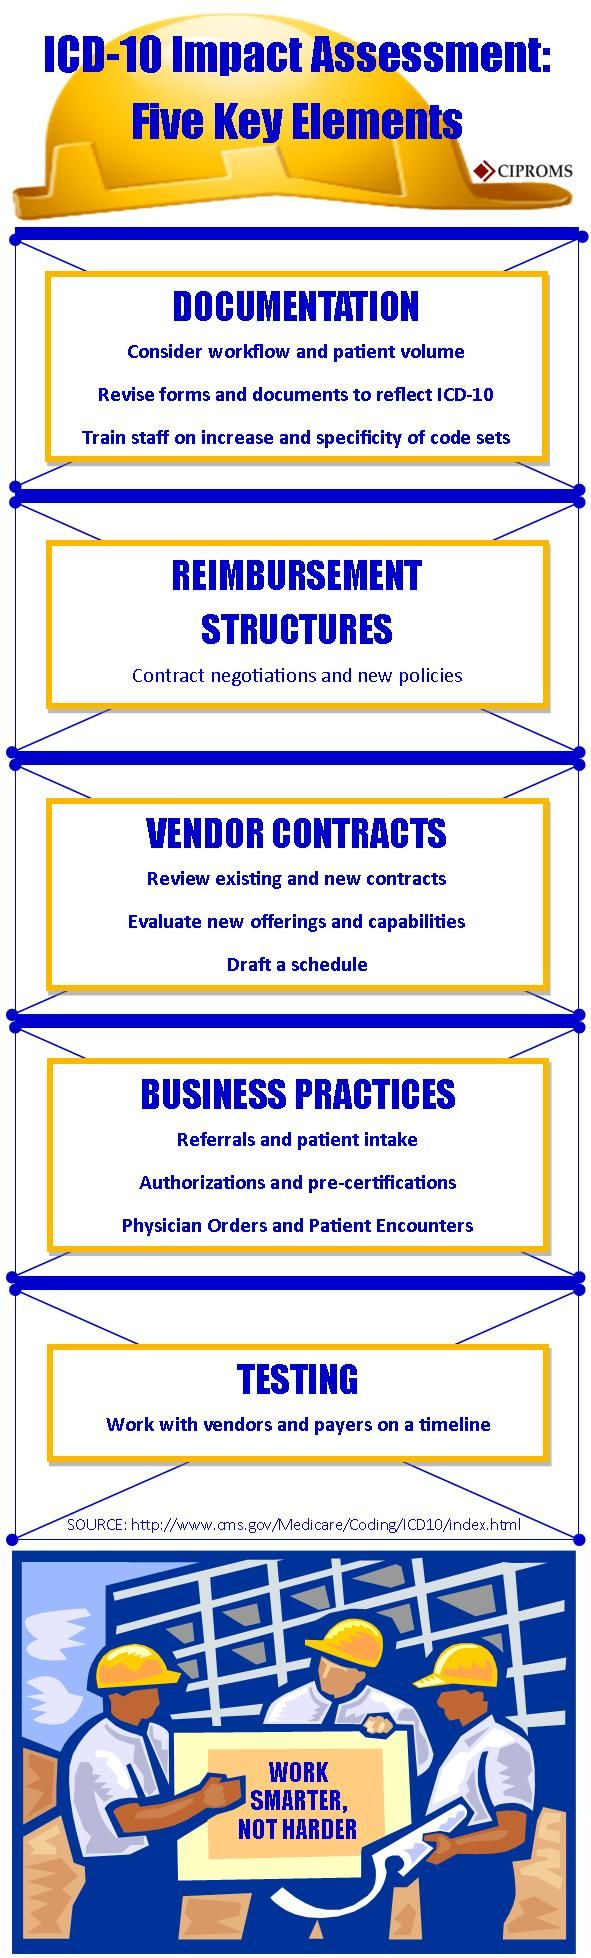 Best 114 icd 10 ideas on pinterest icd 10 medical billing and cms icd 10 impact assessement five key elements from ciproms http fandeluxe Gallery